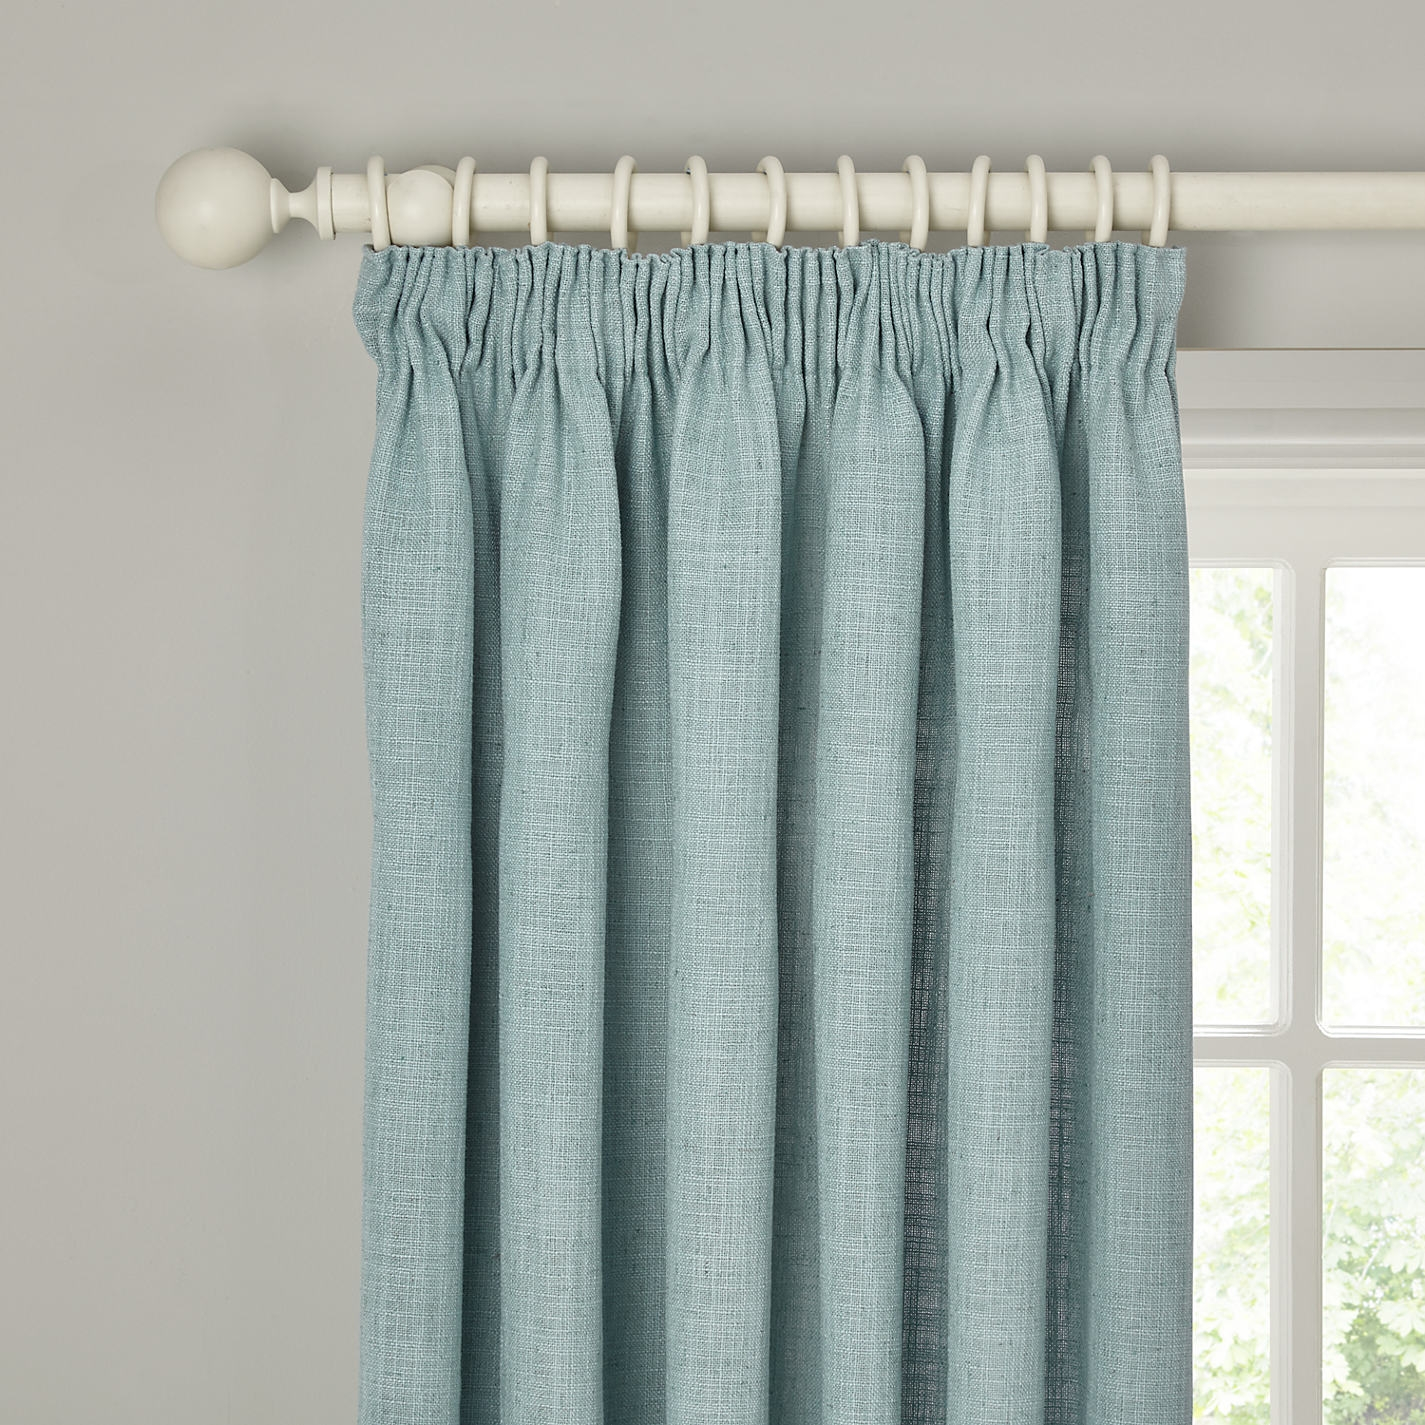 Lined Pencil Pleat Cotton Curtains Pencil Pleat Curtains Buying With Lined Cotton Curtains (Image 10 of 15)